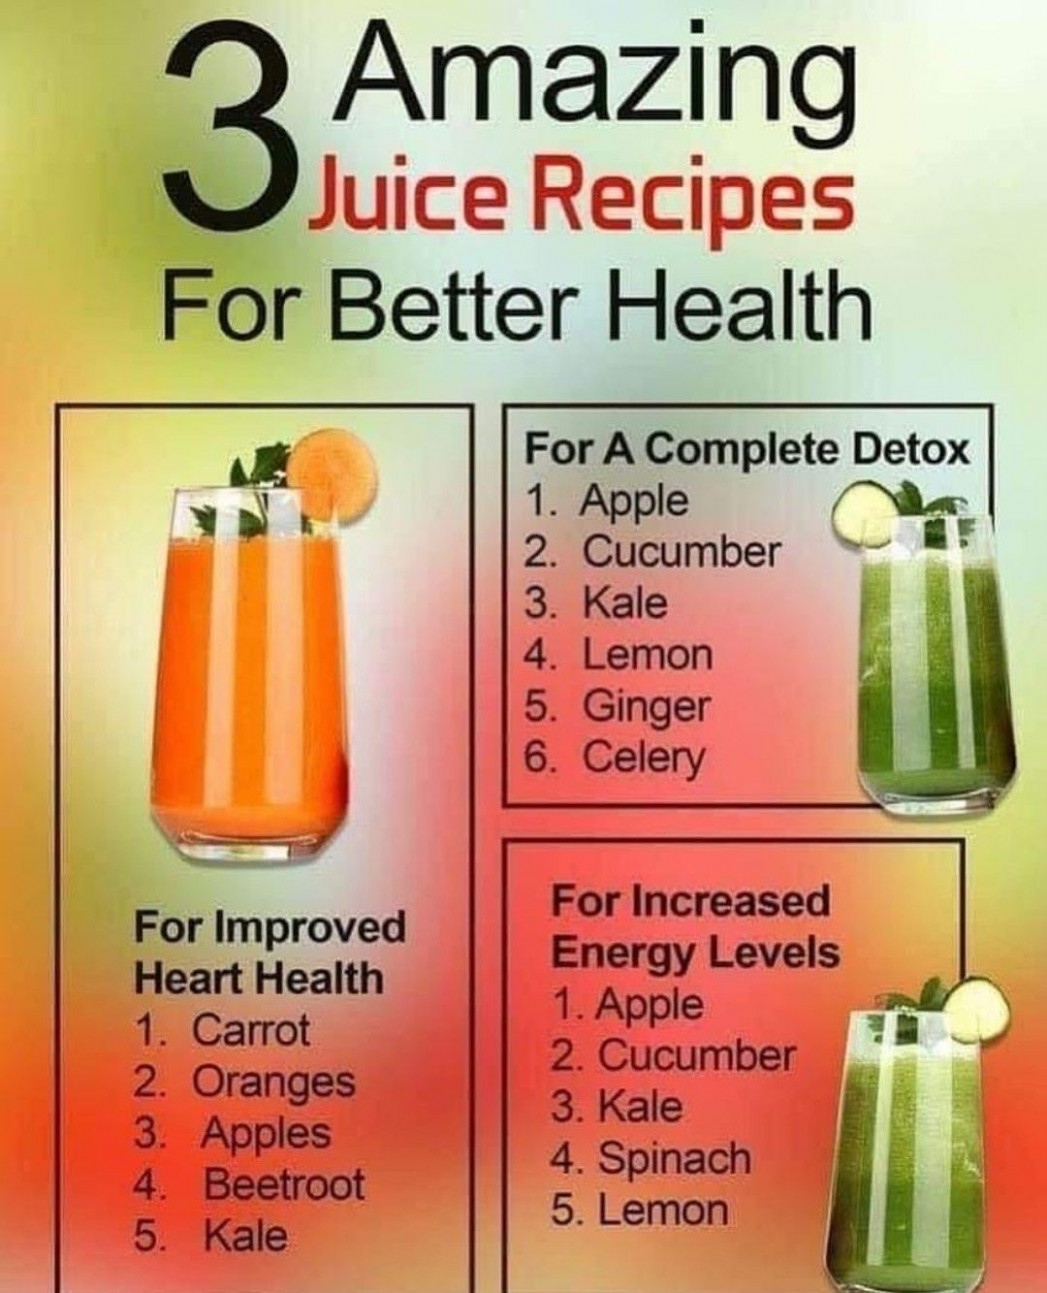 Pin on Detox Juice Recipes- Juices and Smoothies to Cleanse